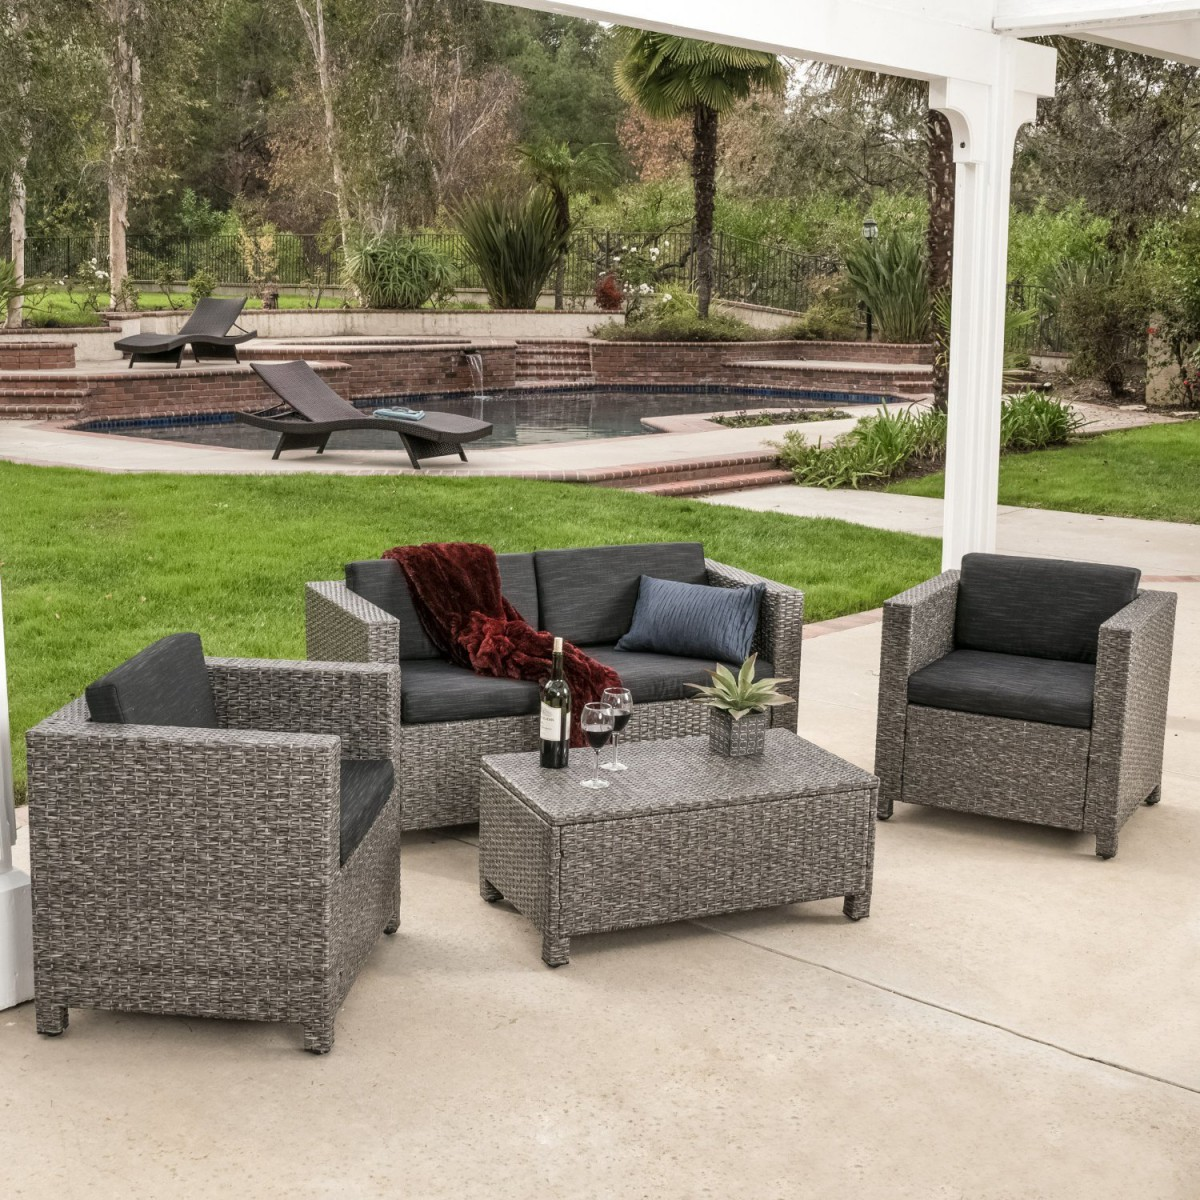 Venice 4 piece grey black wicker outdoor sectional sofa set for Outdoor furniture 4 piece